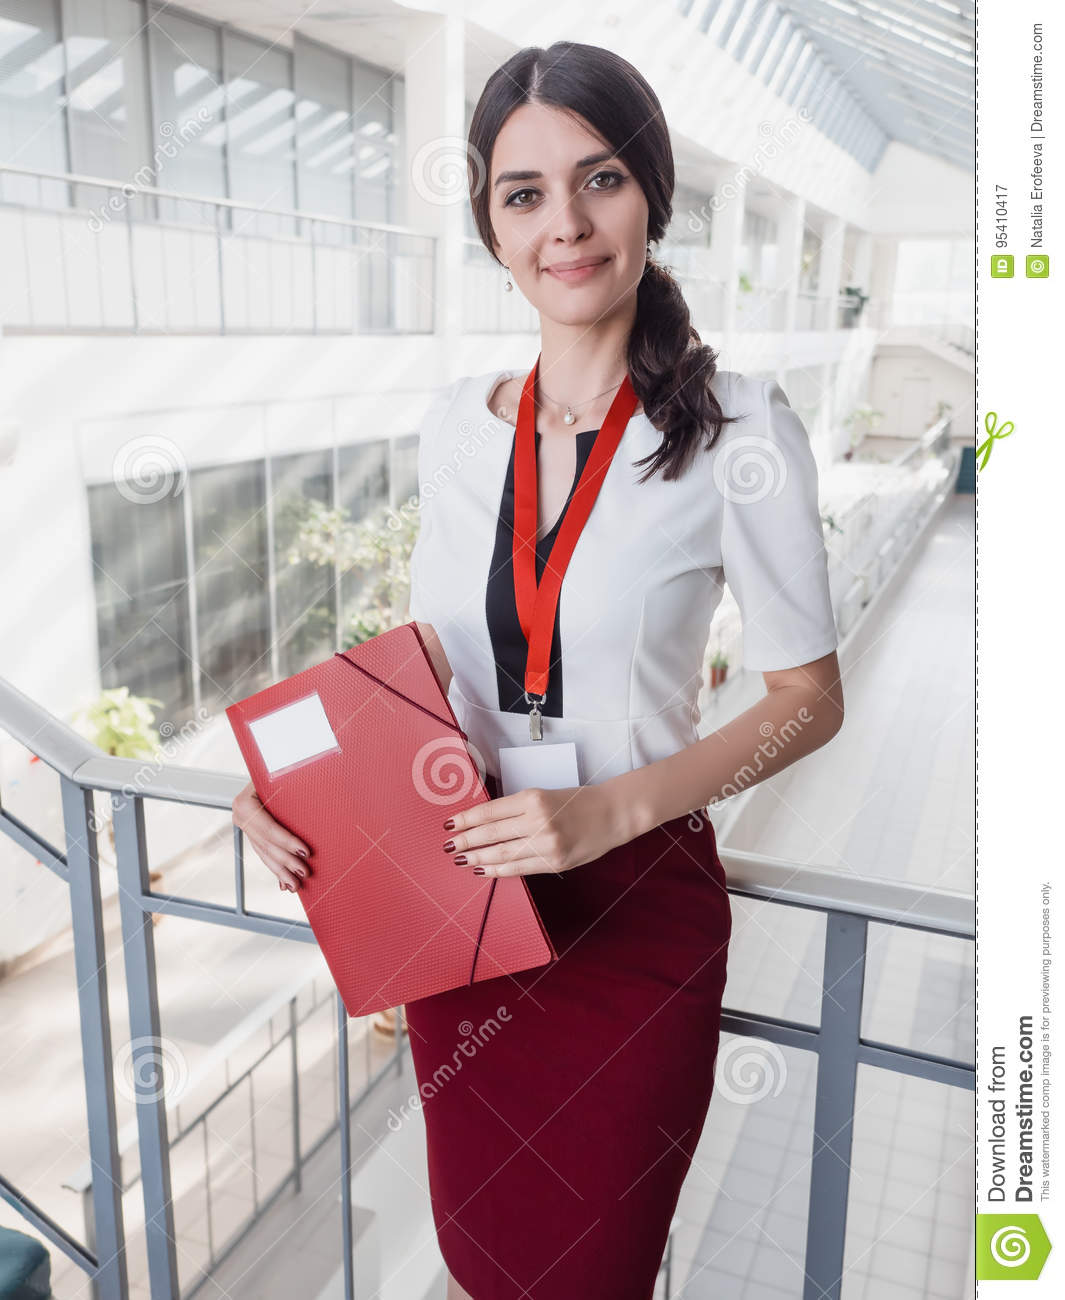 Beautiful Smiling Businesswoman Standing Against White Offices Background. Portrait of Business Woman With a Folder in Her Hands